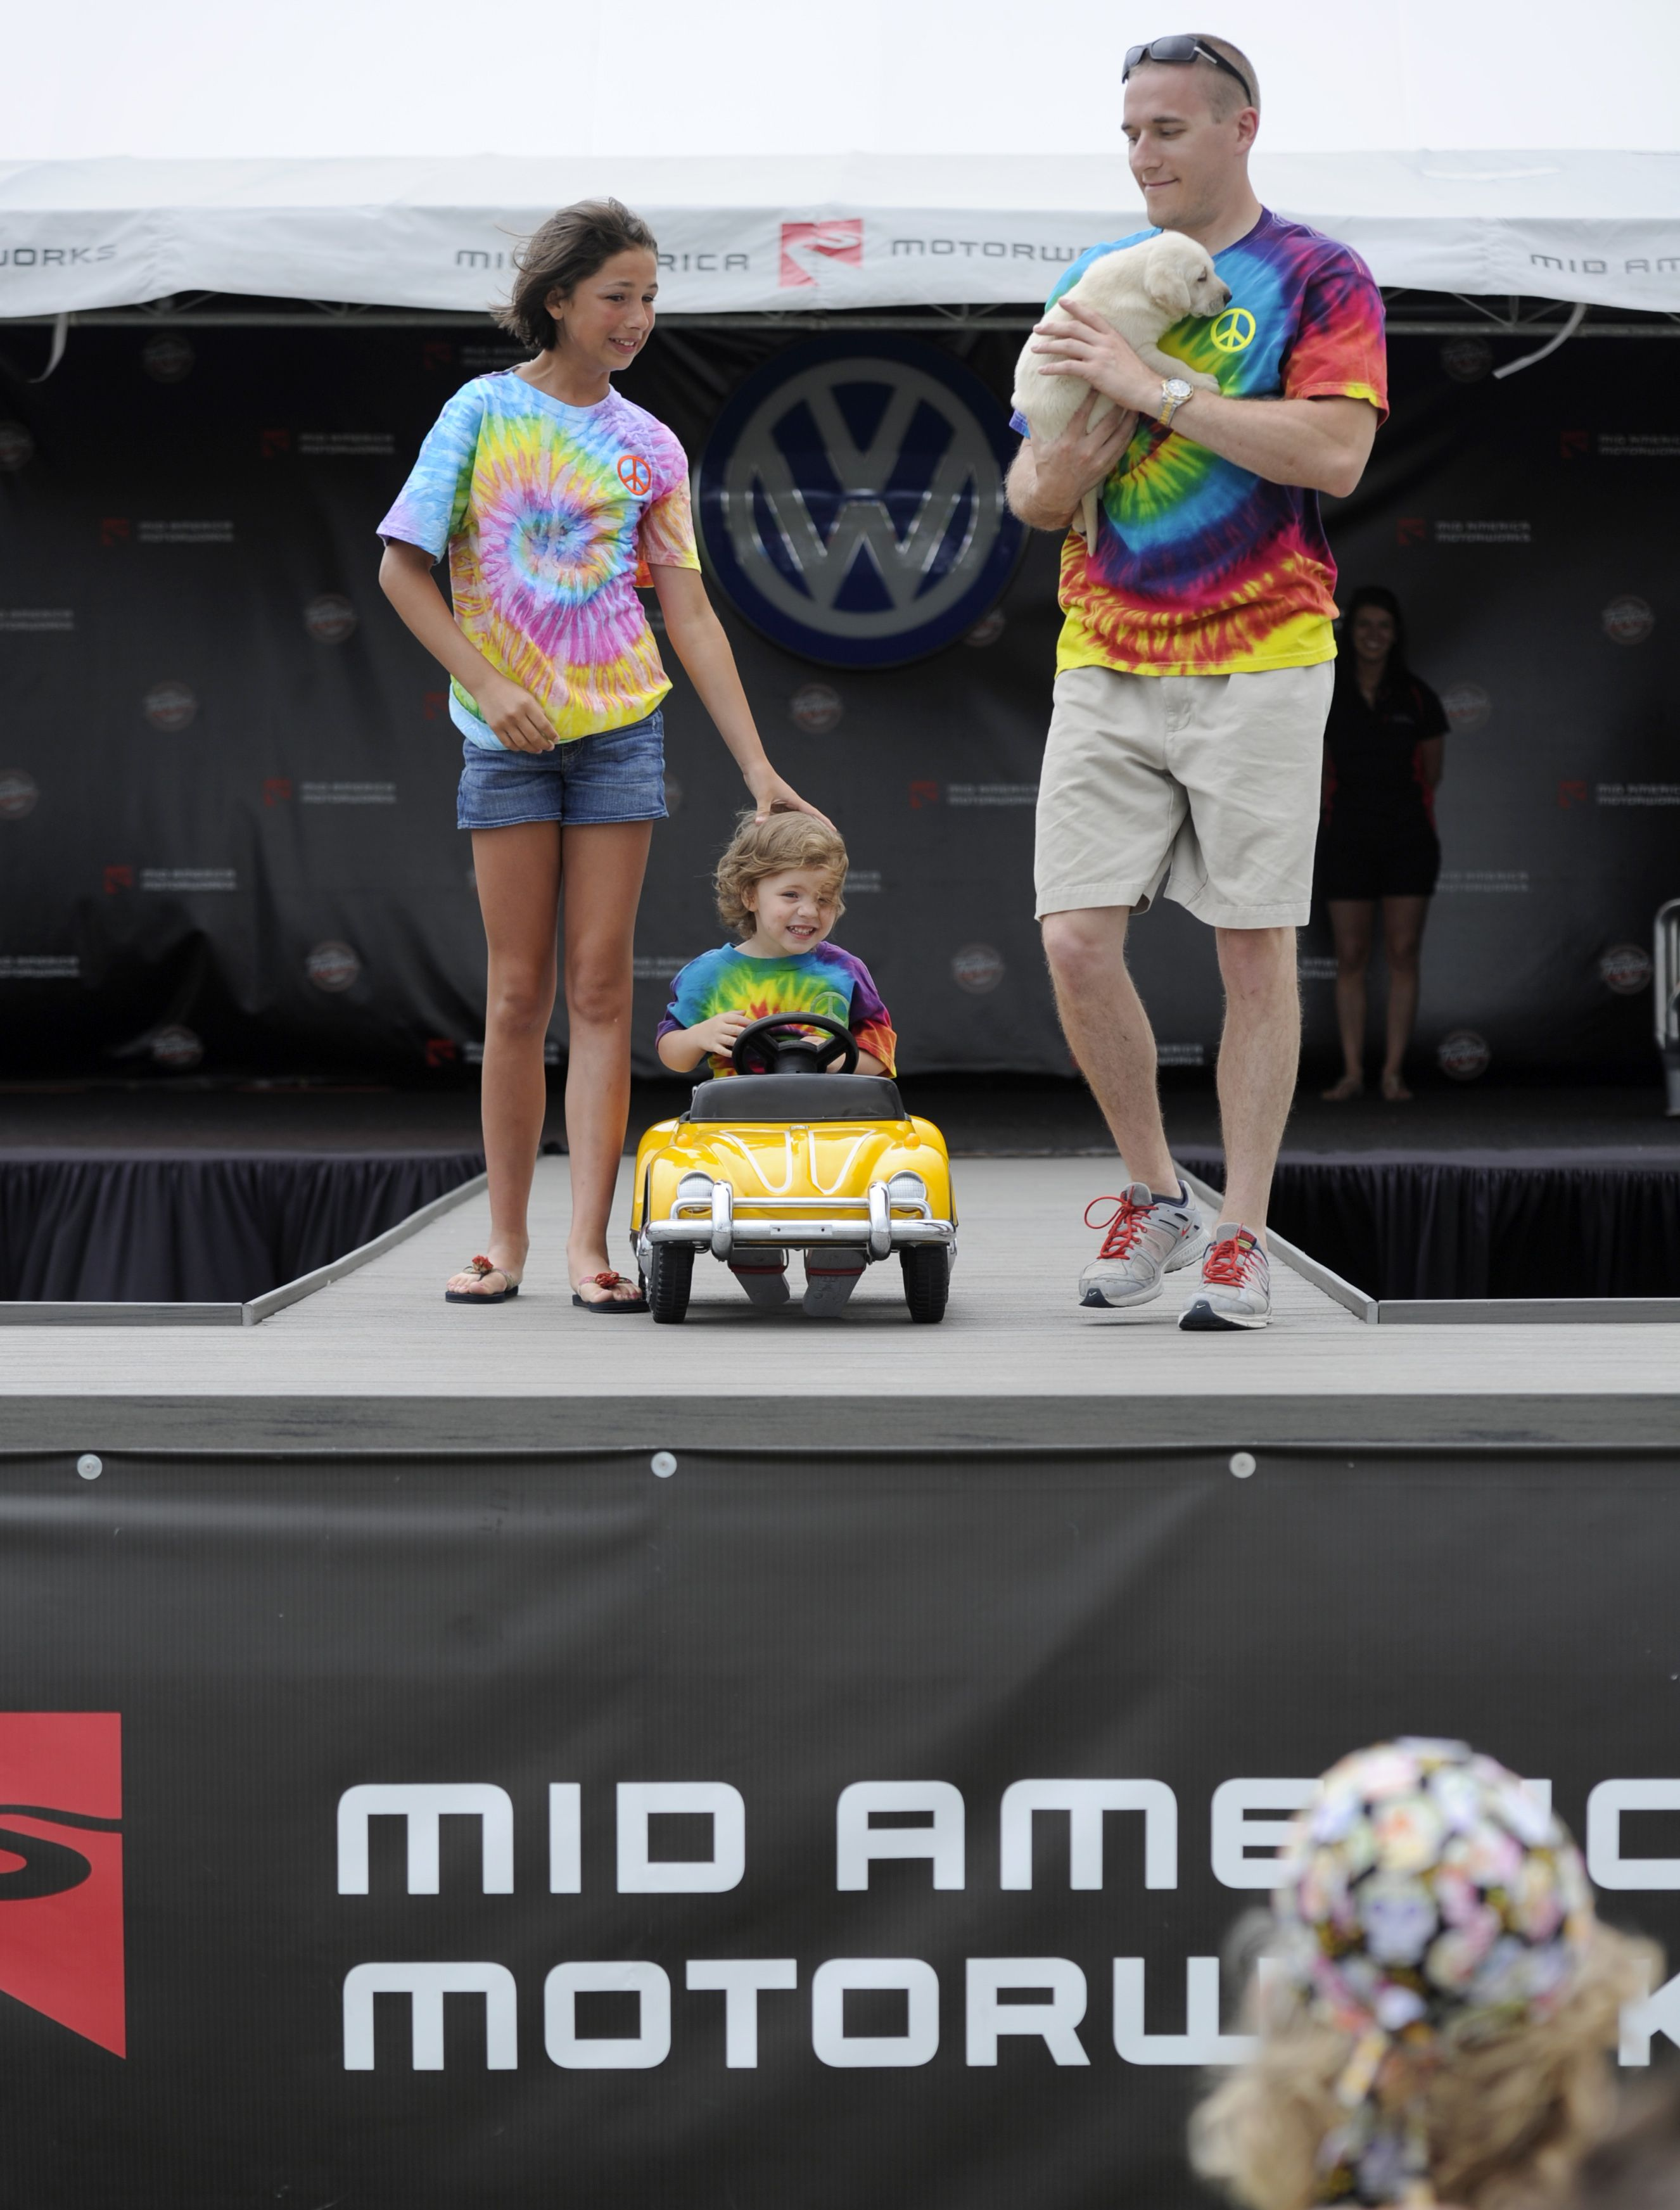 Mid America Motorworks shows off the latest VW fashions during the Funfest for Air-Cooled VW Fashion Show. #funfestacvw www.funfestacvw.com